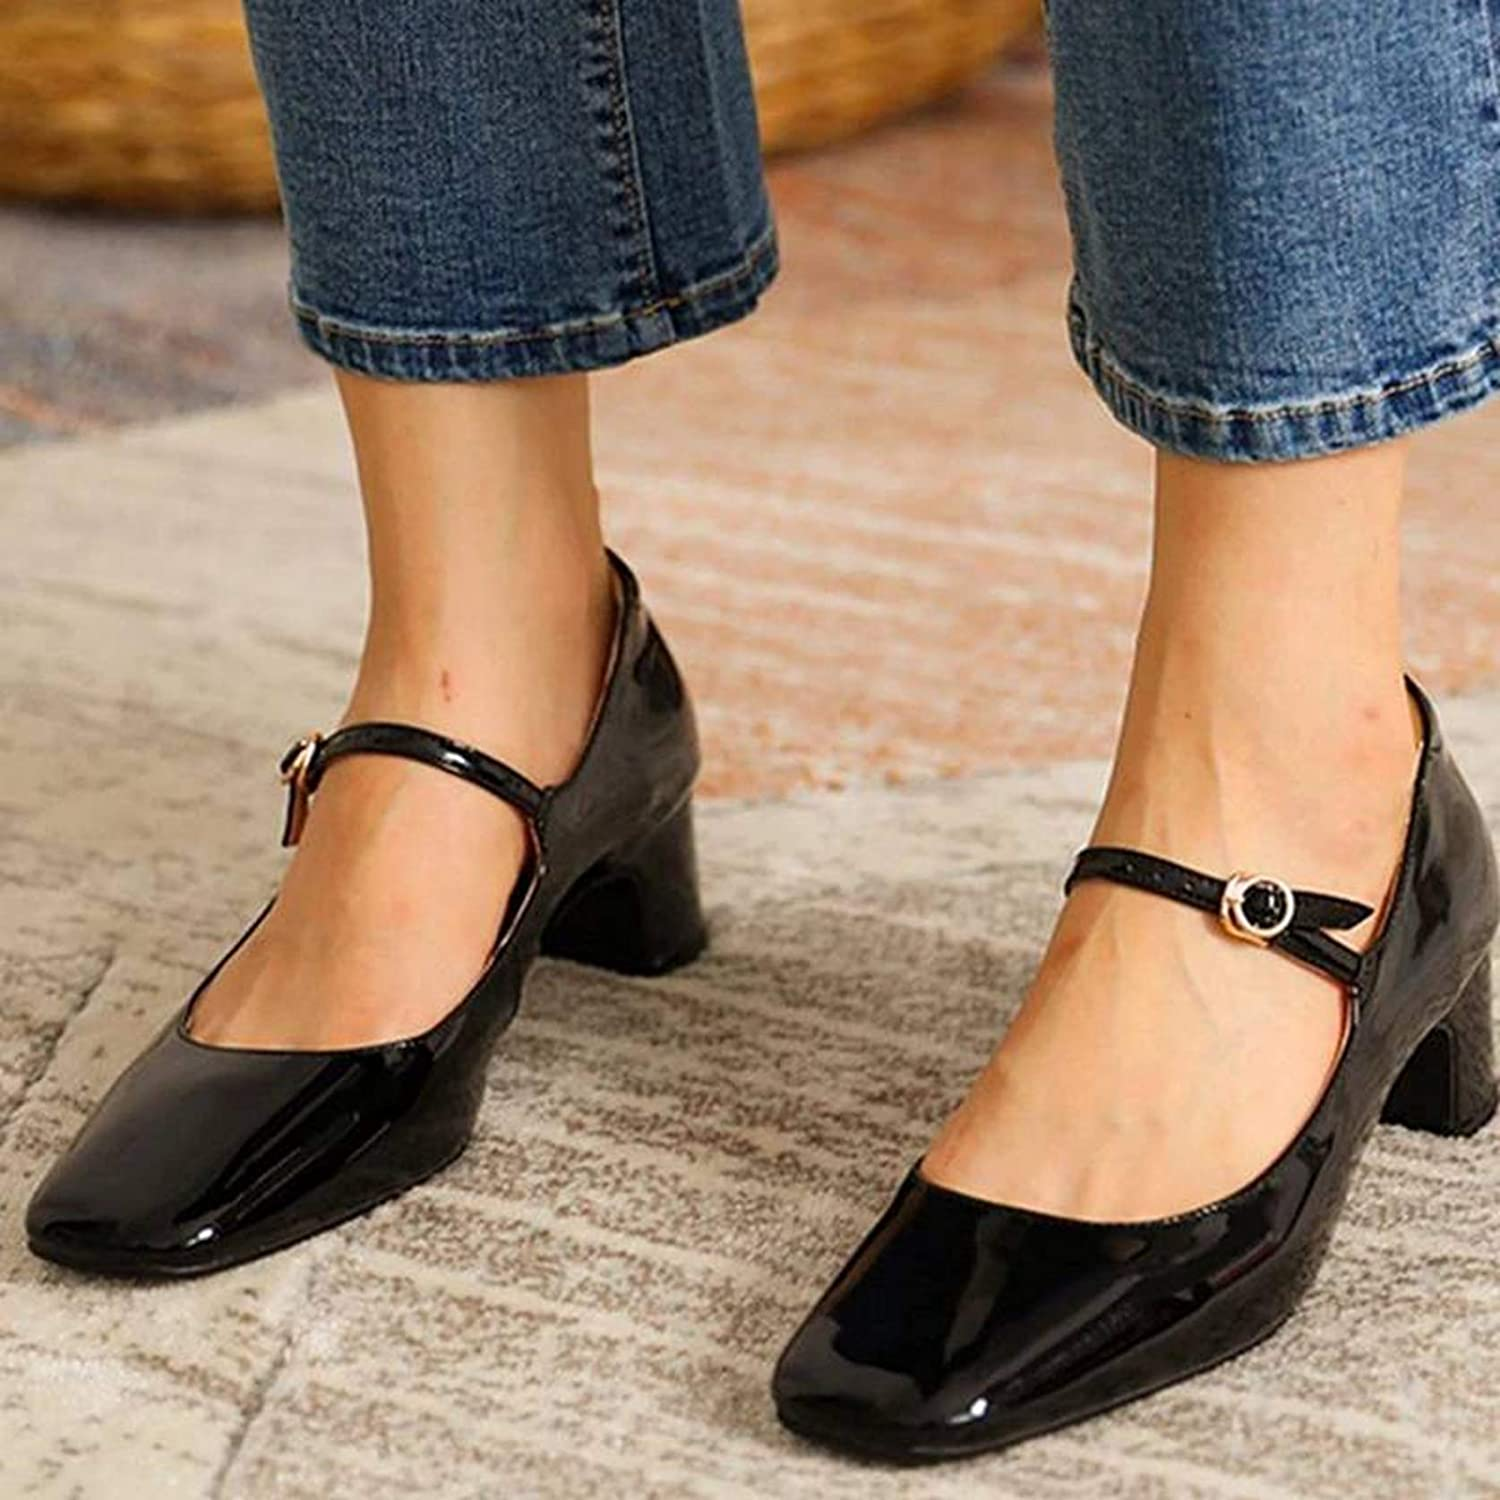 Womens Mary Jane Shoes Fashion Casual Low Heel Shallow Mouth Round Toe Party Shoes Buckle Strap Spring Autumn Pumps